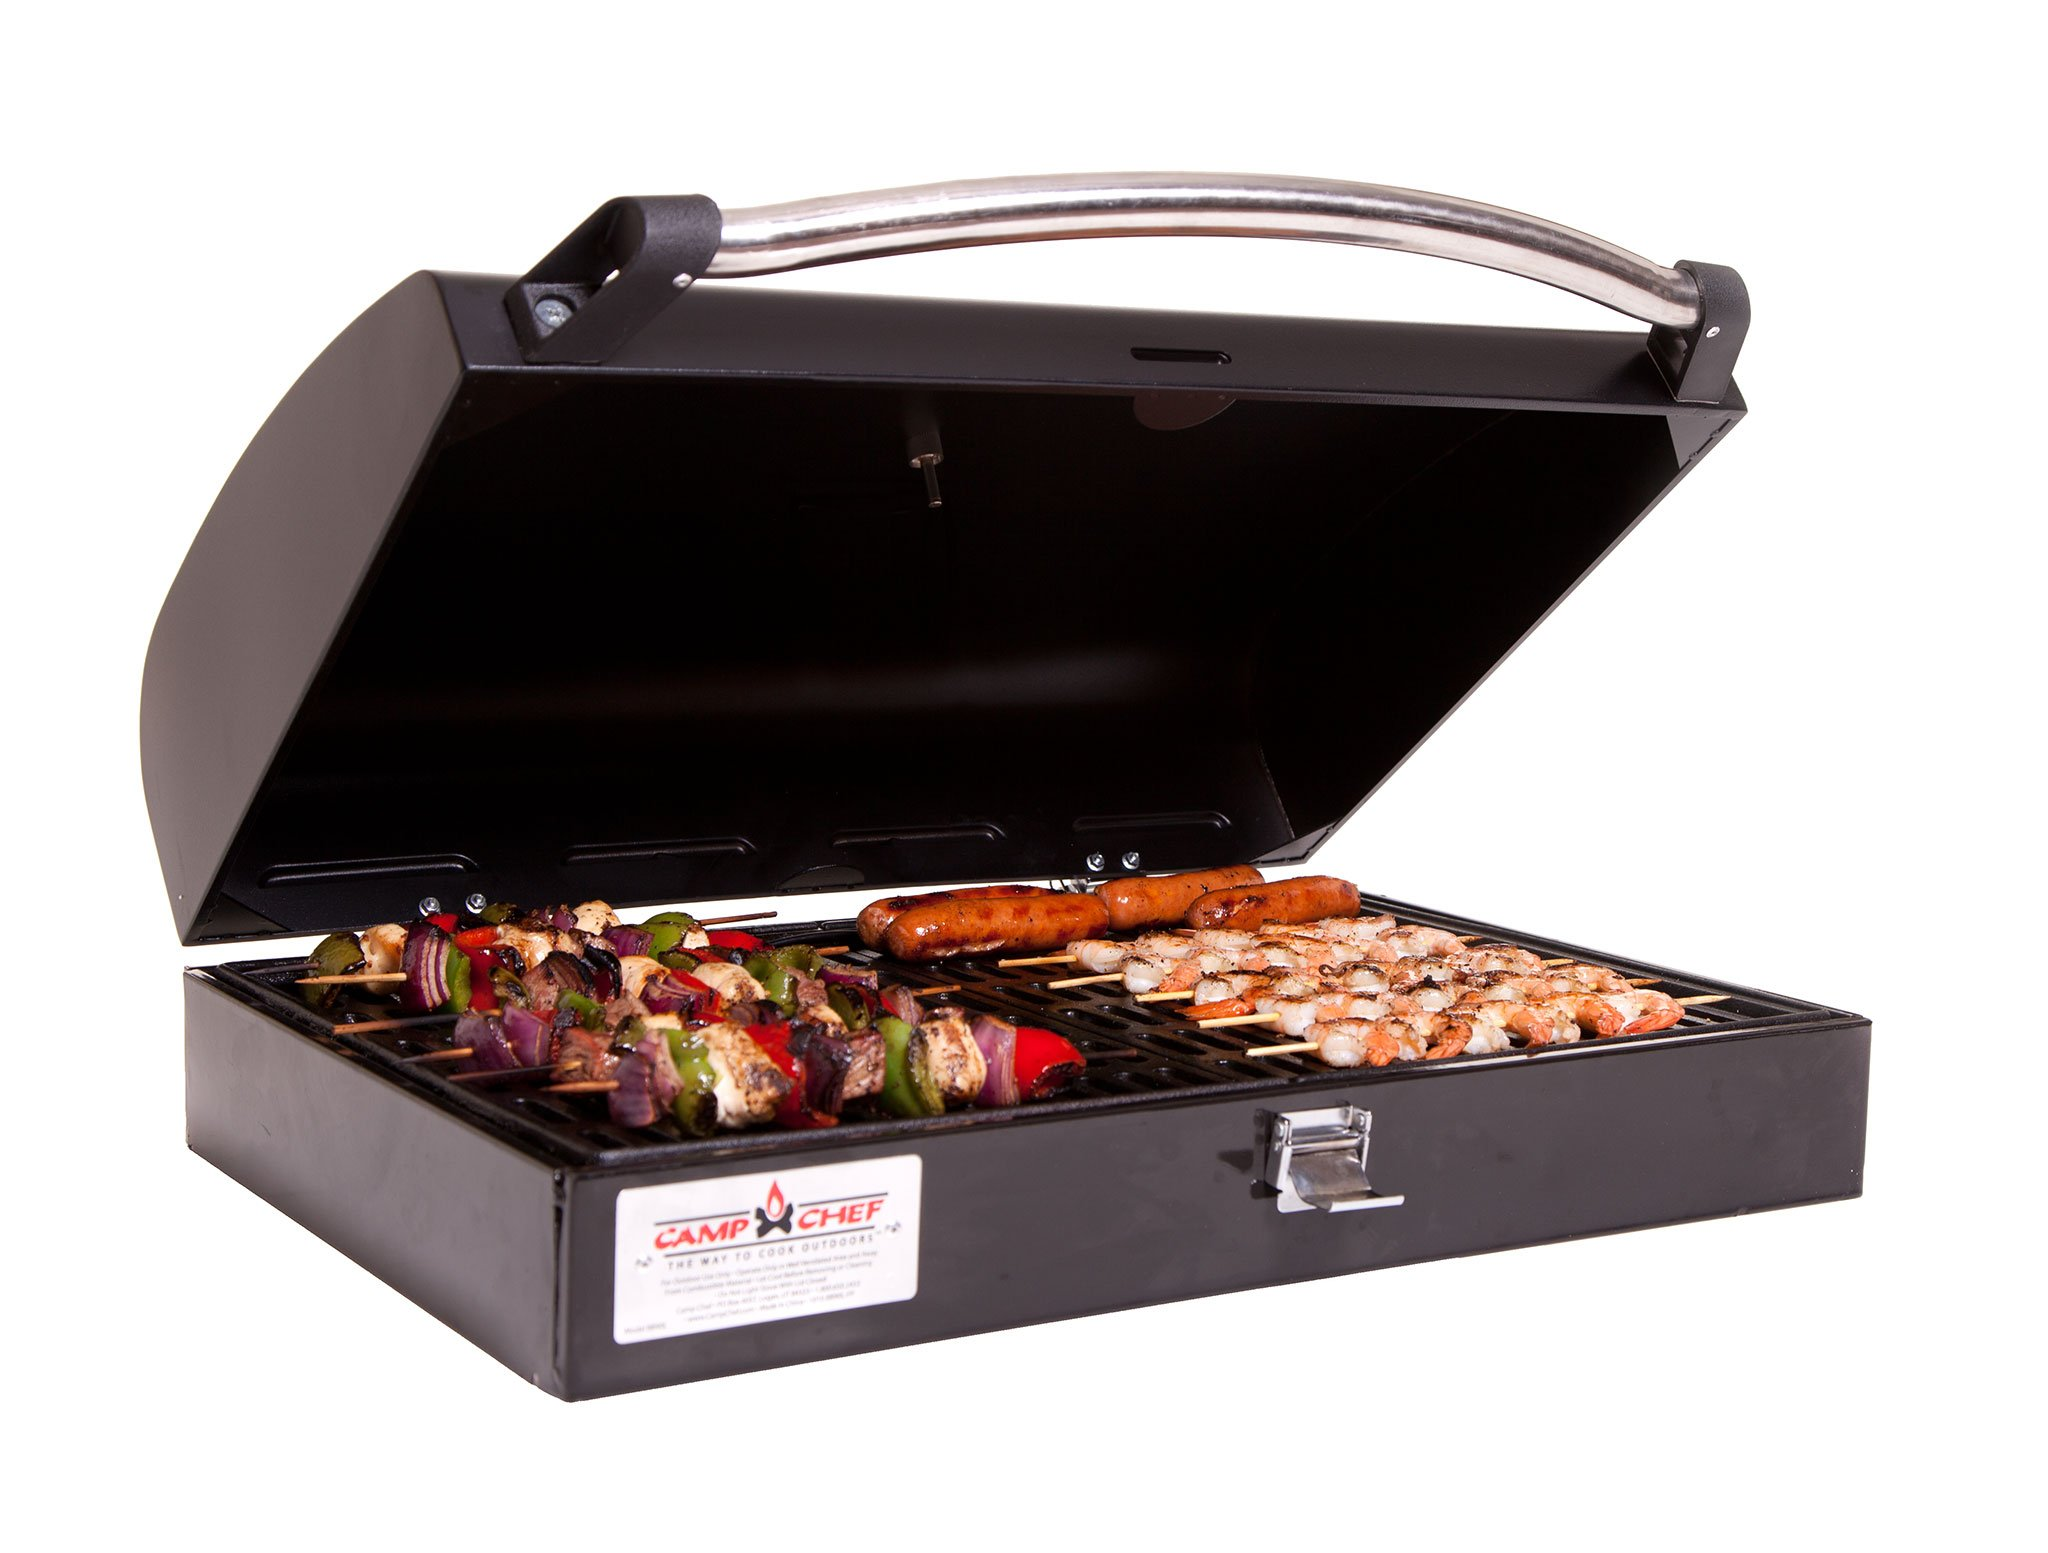 Camp Chef Professional Barbecue Grill Box for 3 Burner Stove by Camp Chef